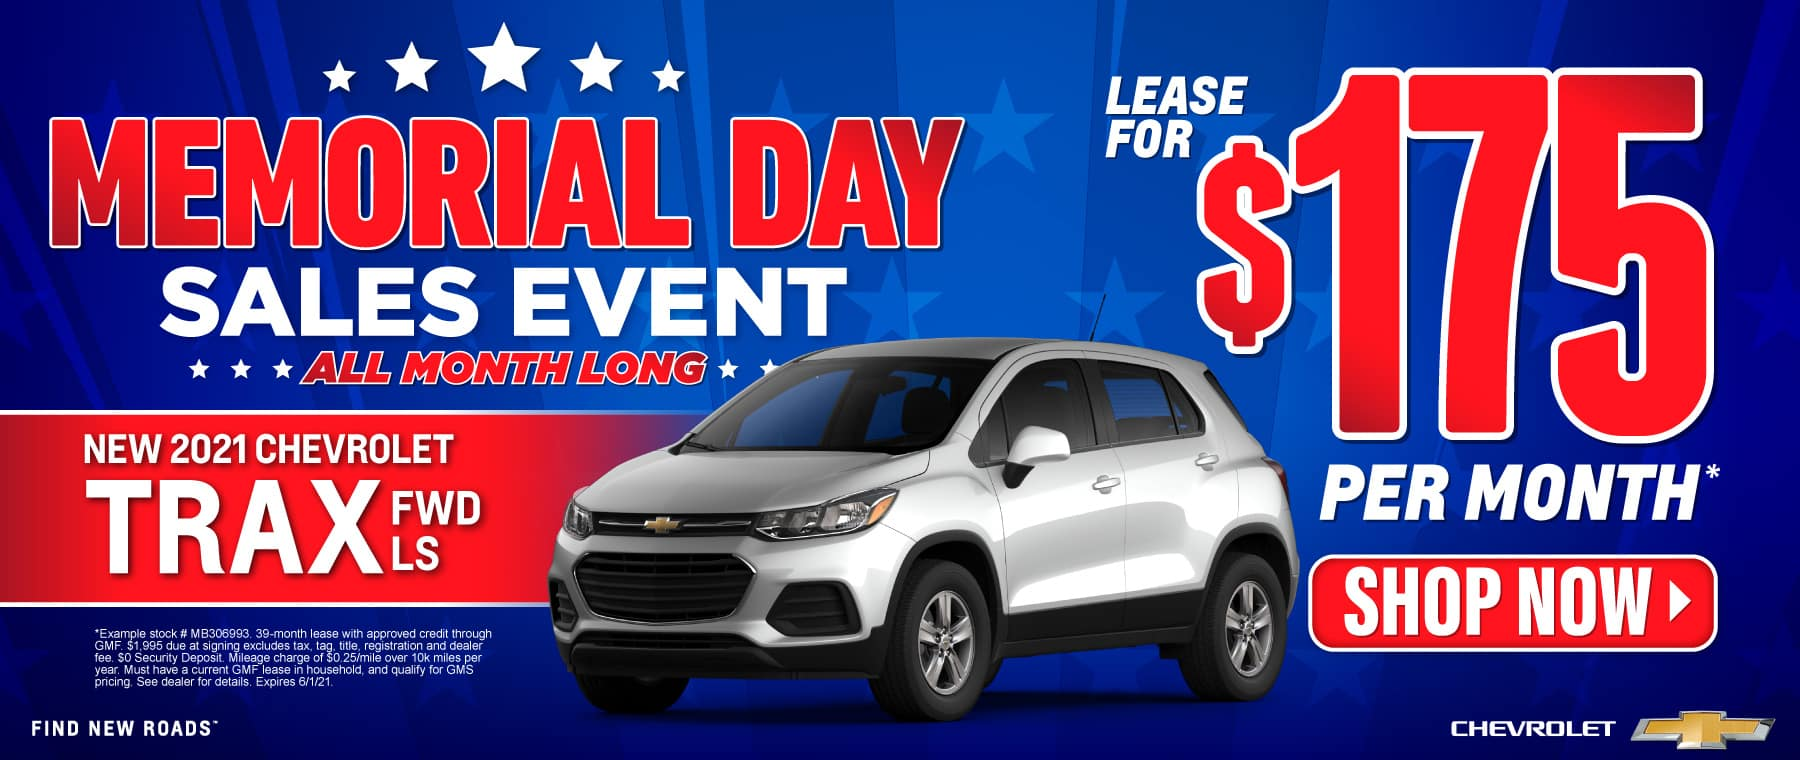 New 2021 Chevy Trax - Only $175 a month - Act Now